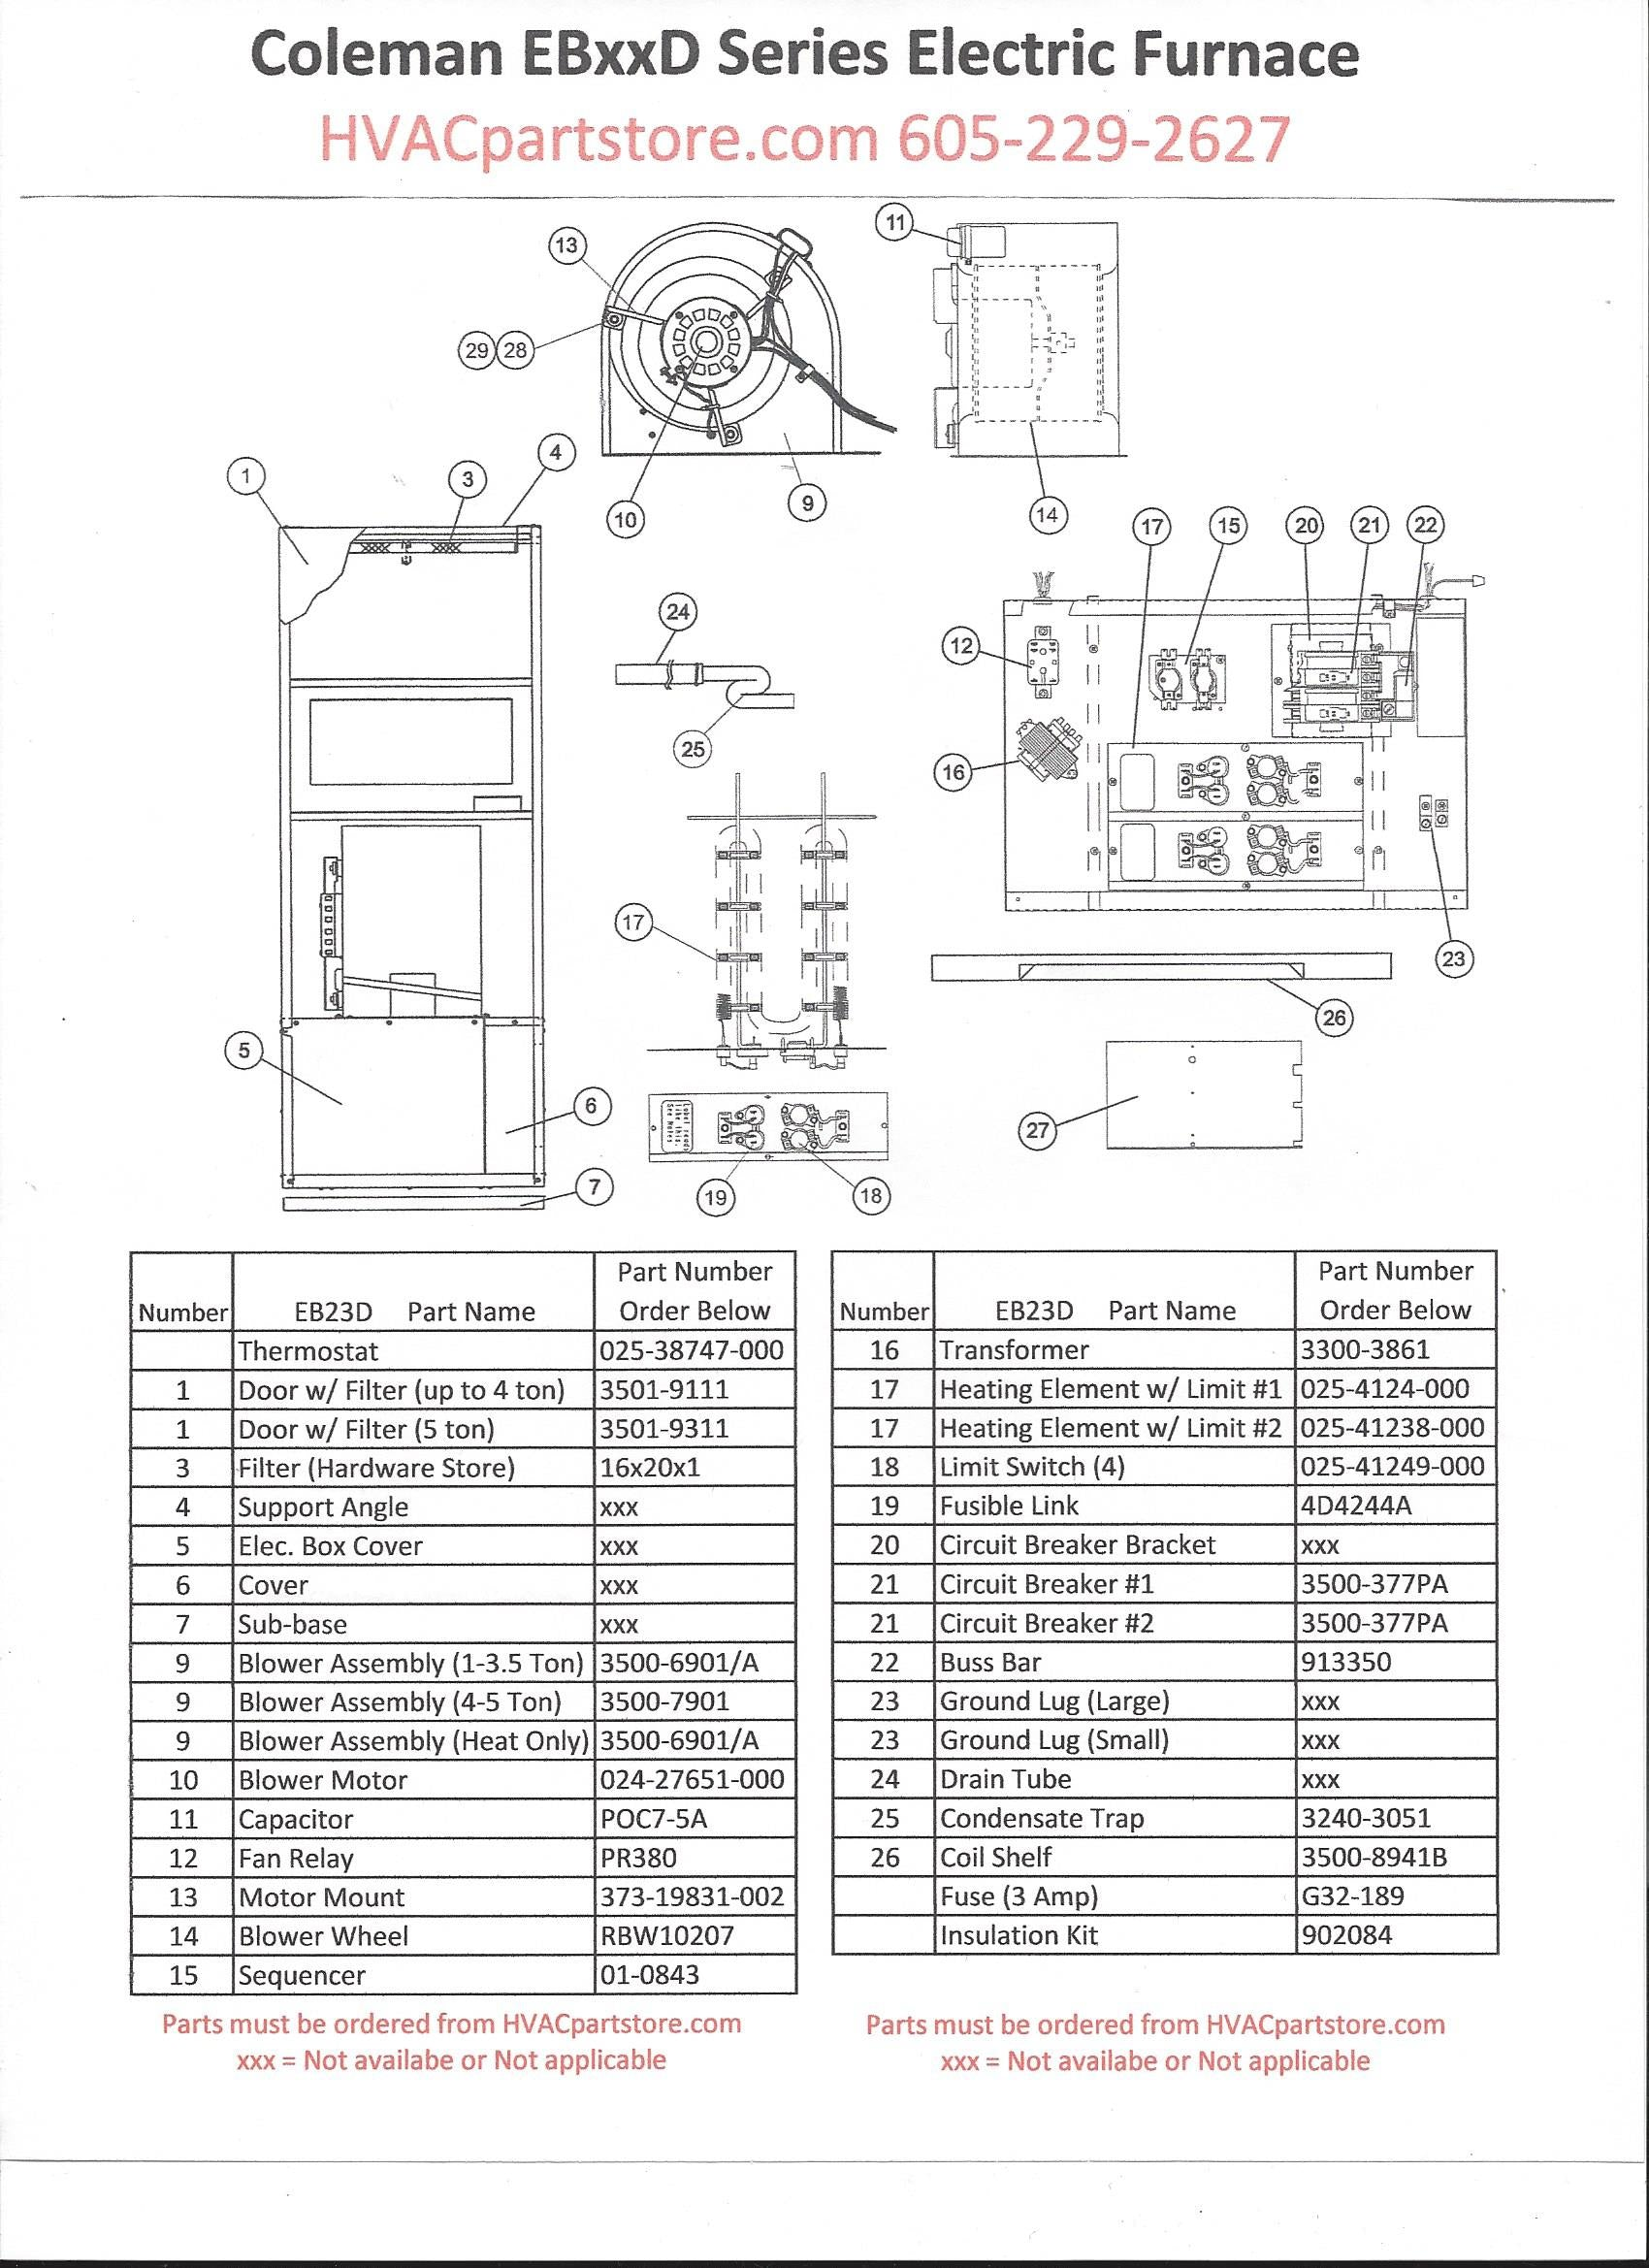 EB23Dparts intertherm sequencer wiring diagram dolgular com electric furnace sequencer wiring diagram at soozxer.org